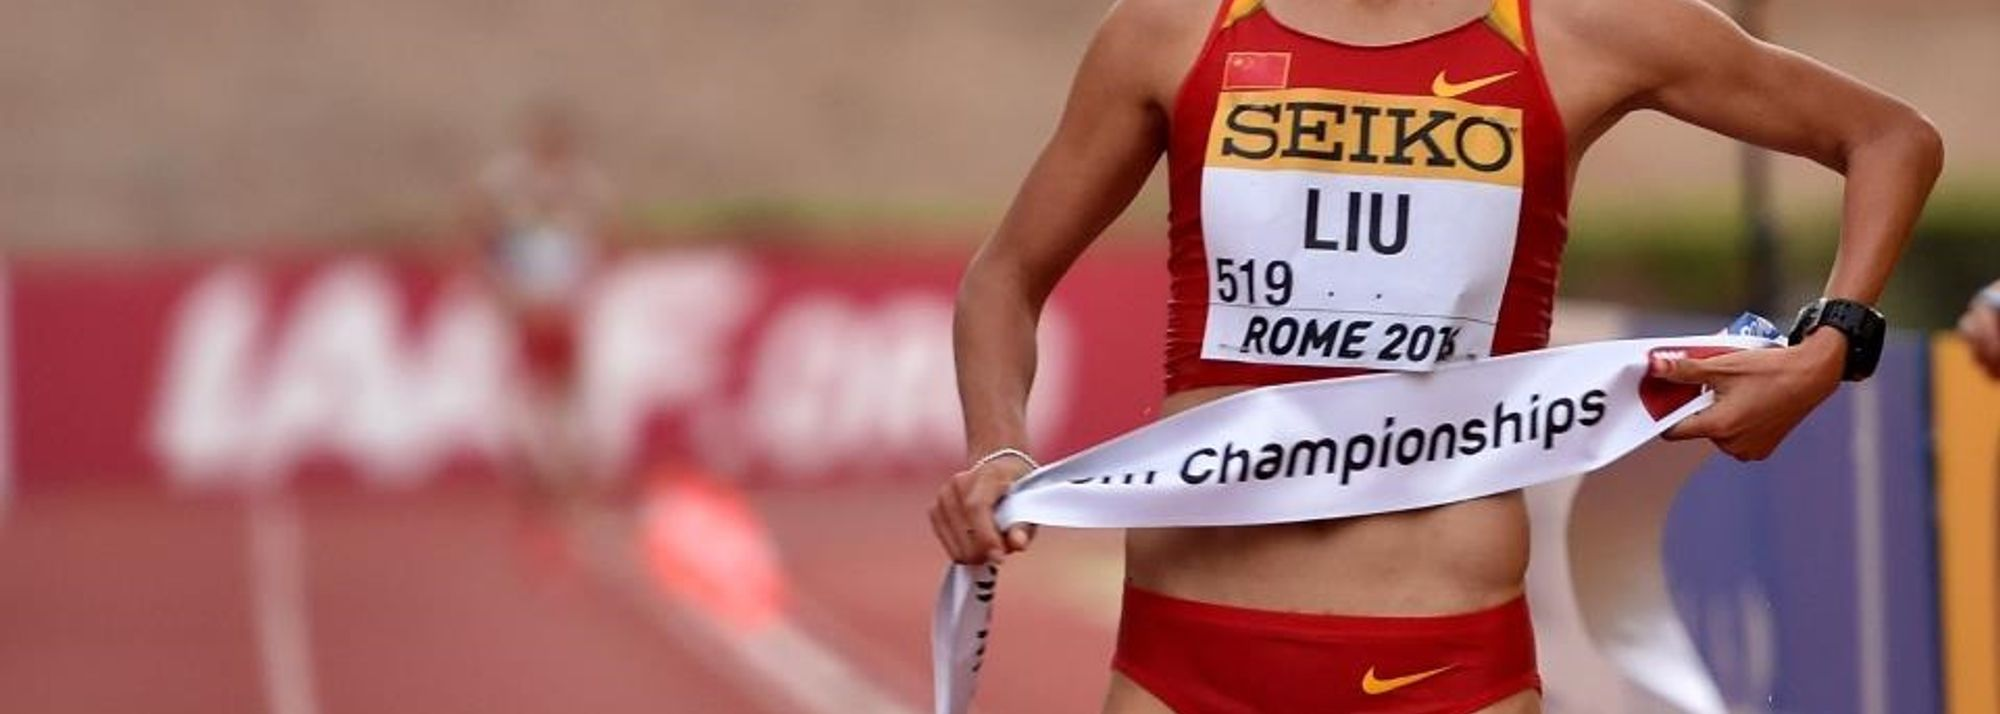 With her 20km victory at the IAAF World Race Walking Team Championships Rome 2016, Liu Hong is one step close to completing the grand slam of major race walking titles.